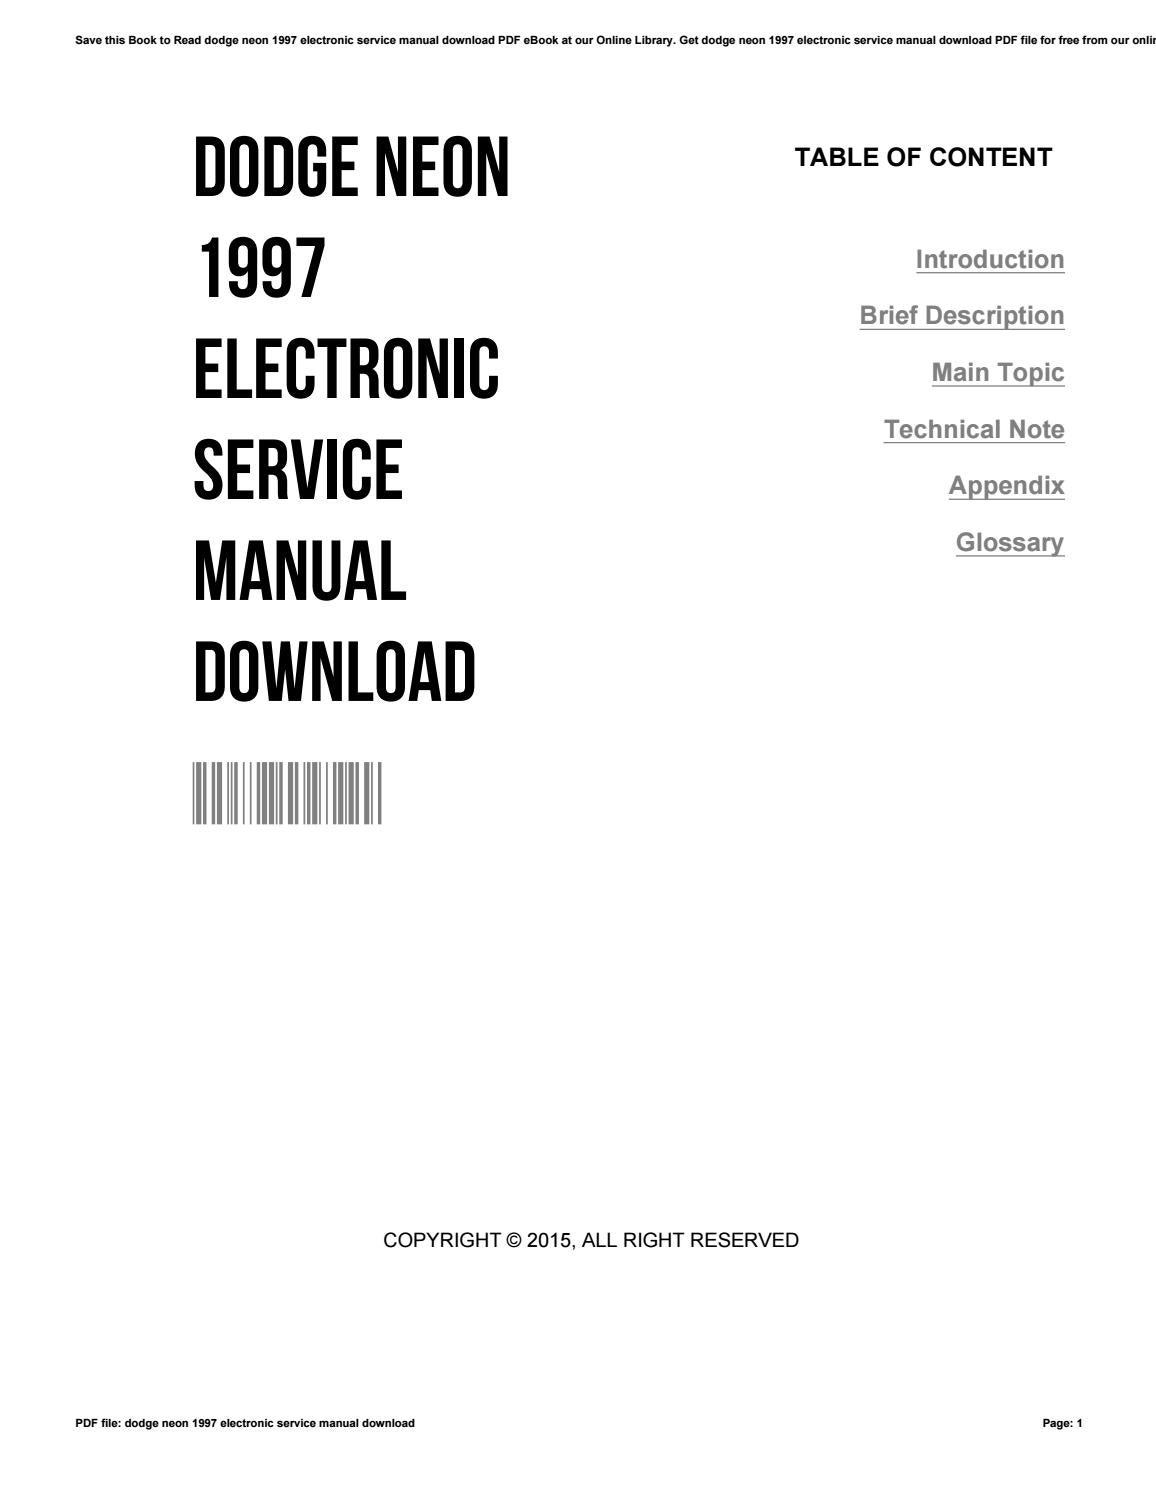 Dodge neon 1997 electronic service manual download by BradPatterson1886 -  issuu